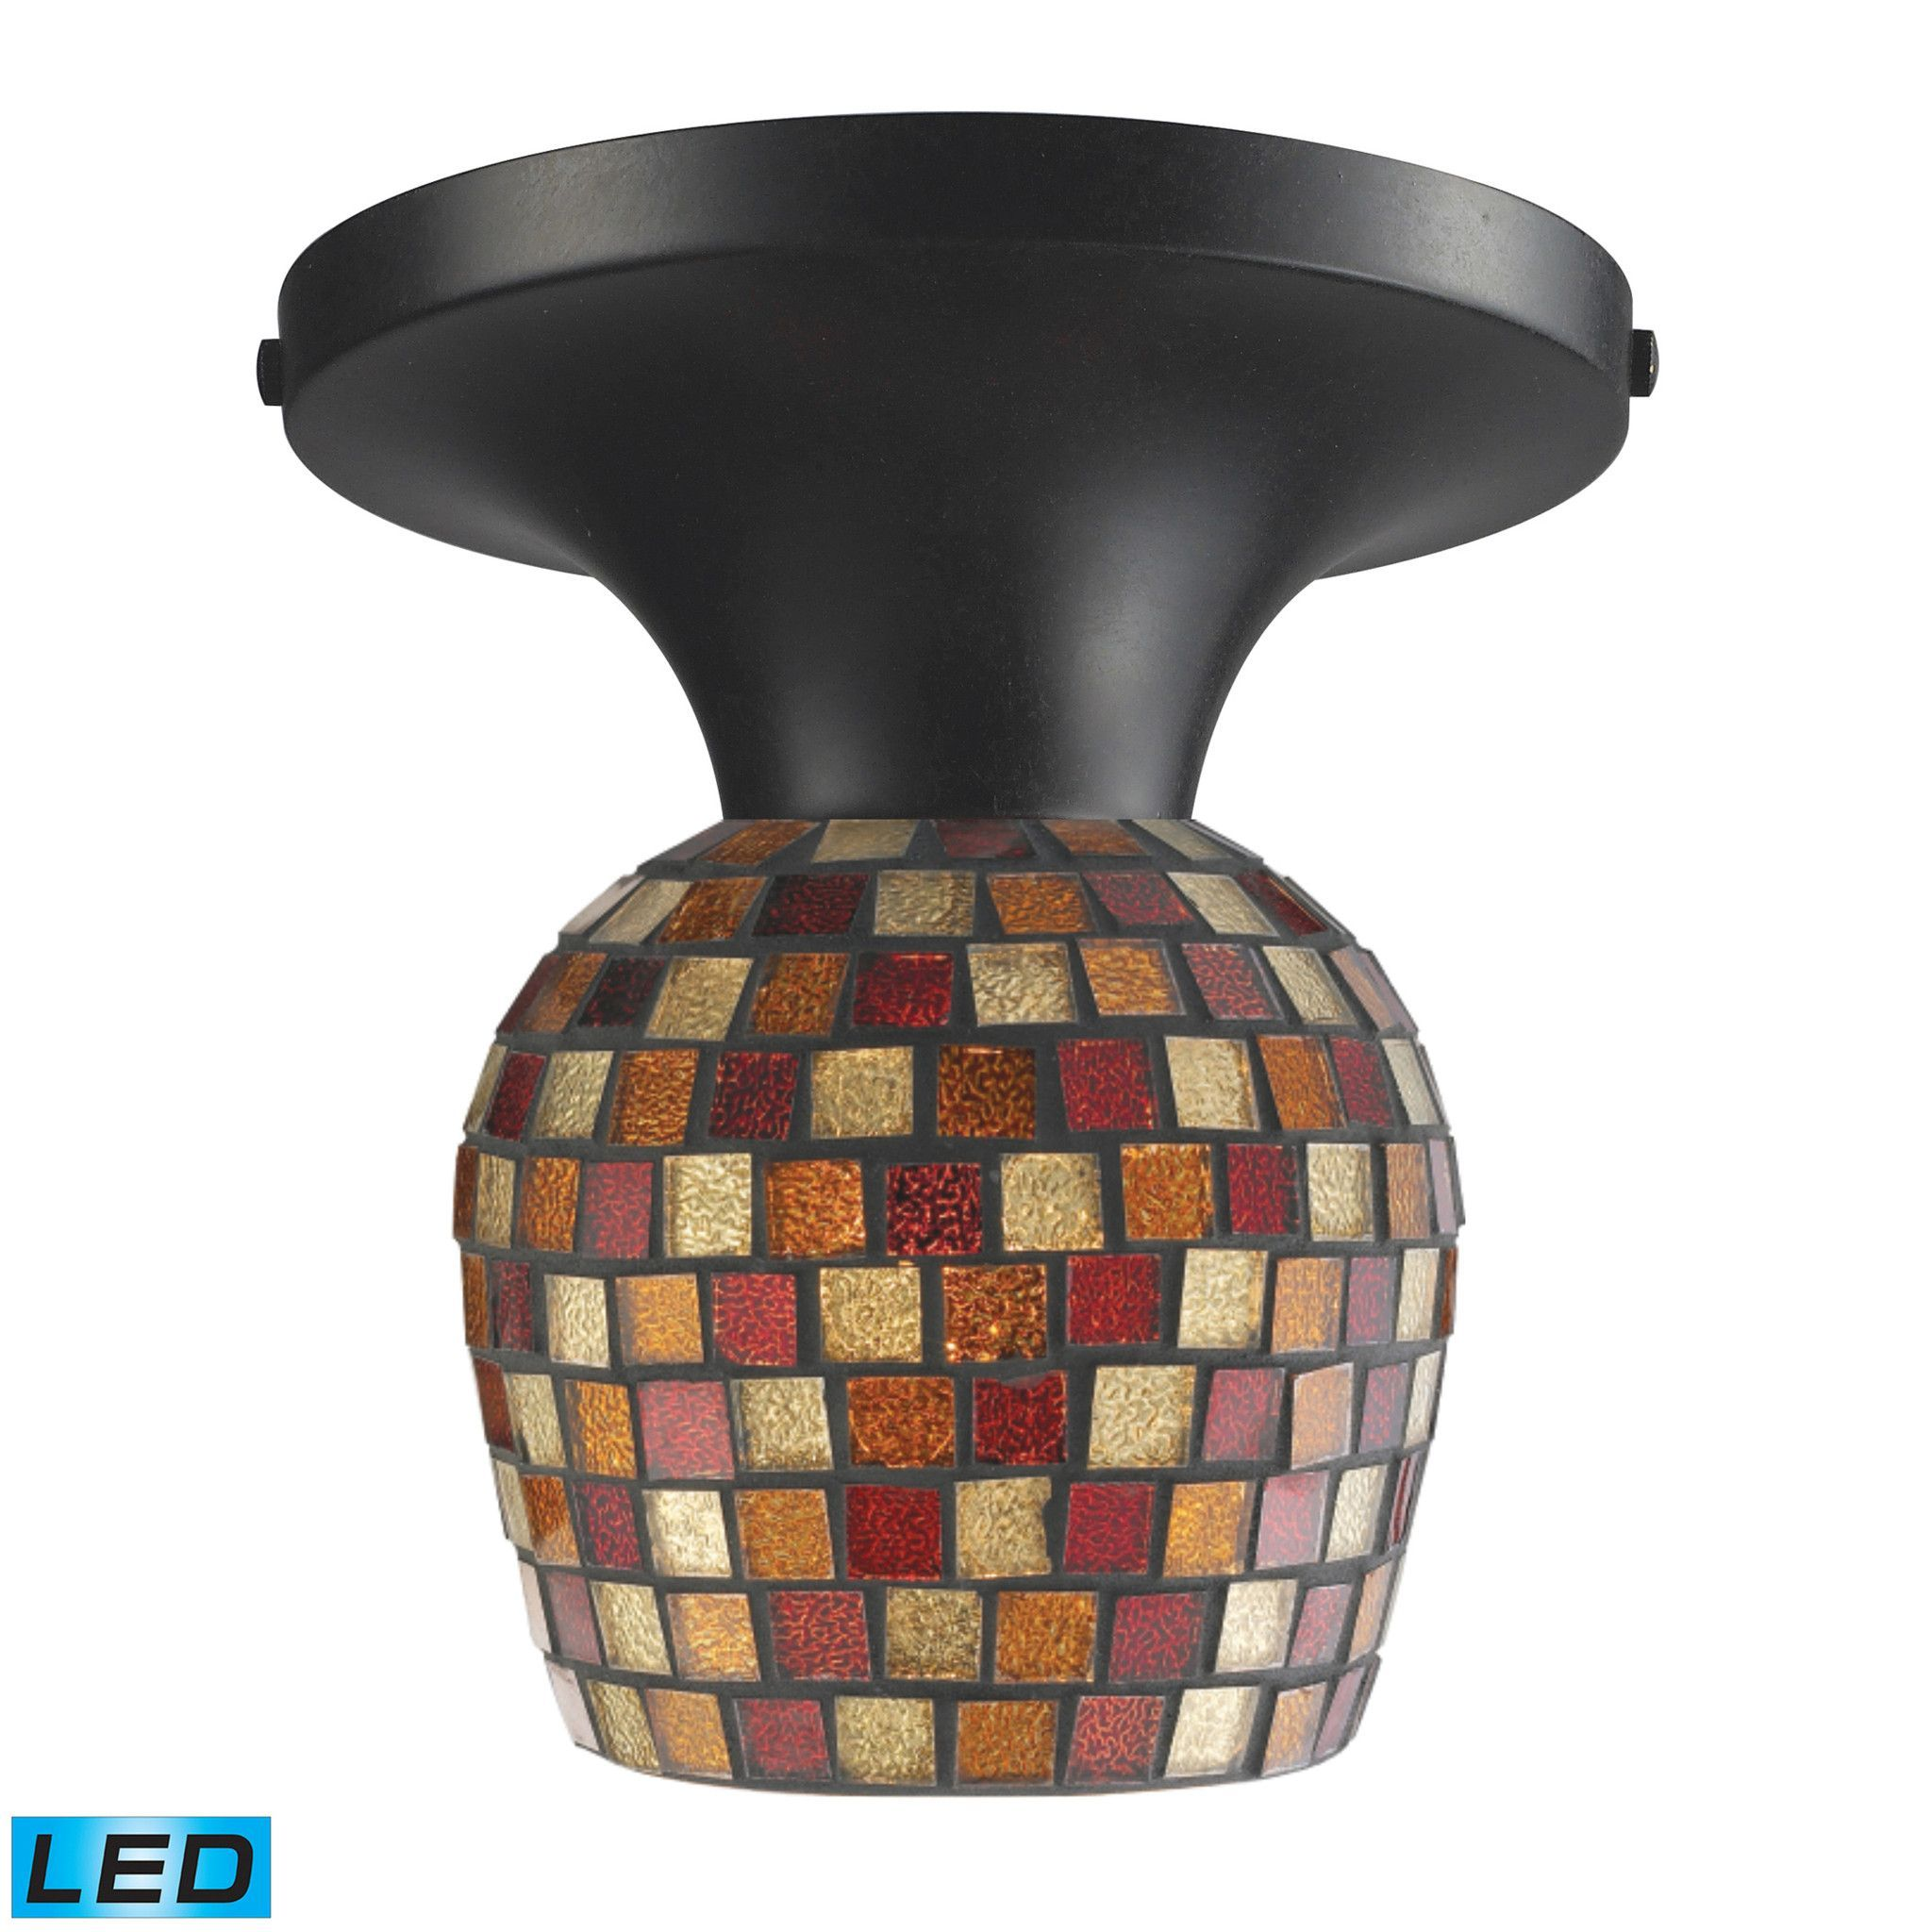 ELK Celina 1-Light Semi-Flush In Dark Rust And Multi Fusion Glass - LED - 10152/1DR-MLT-LED